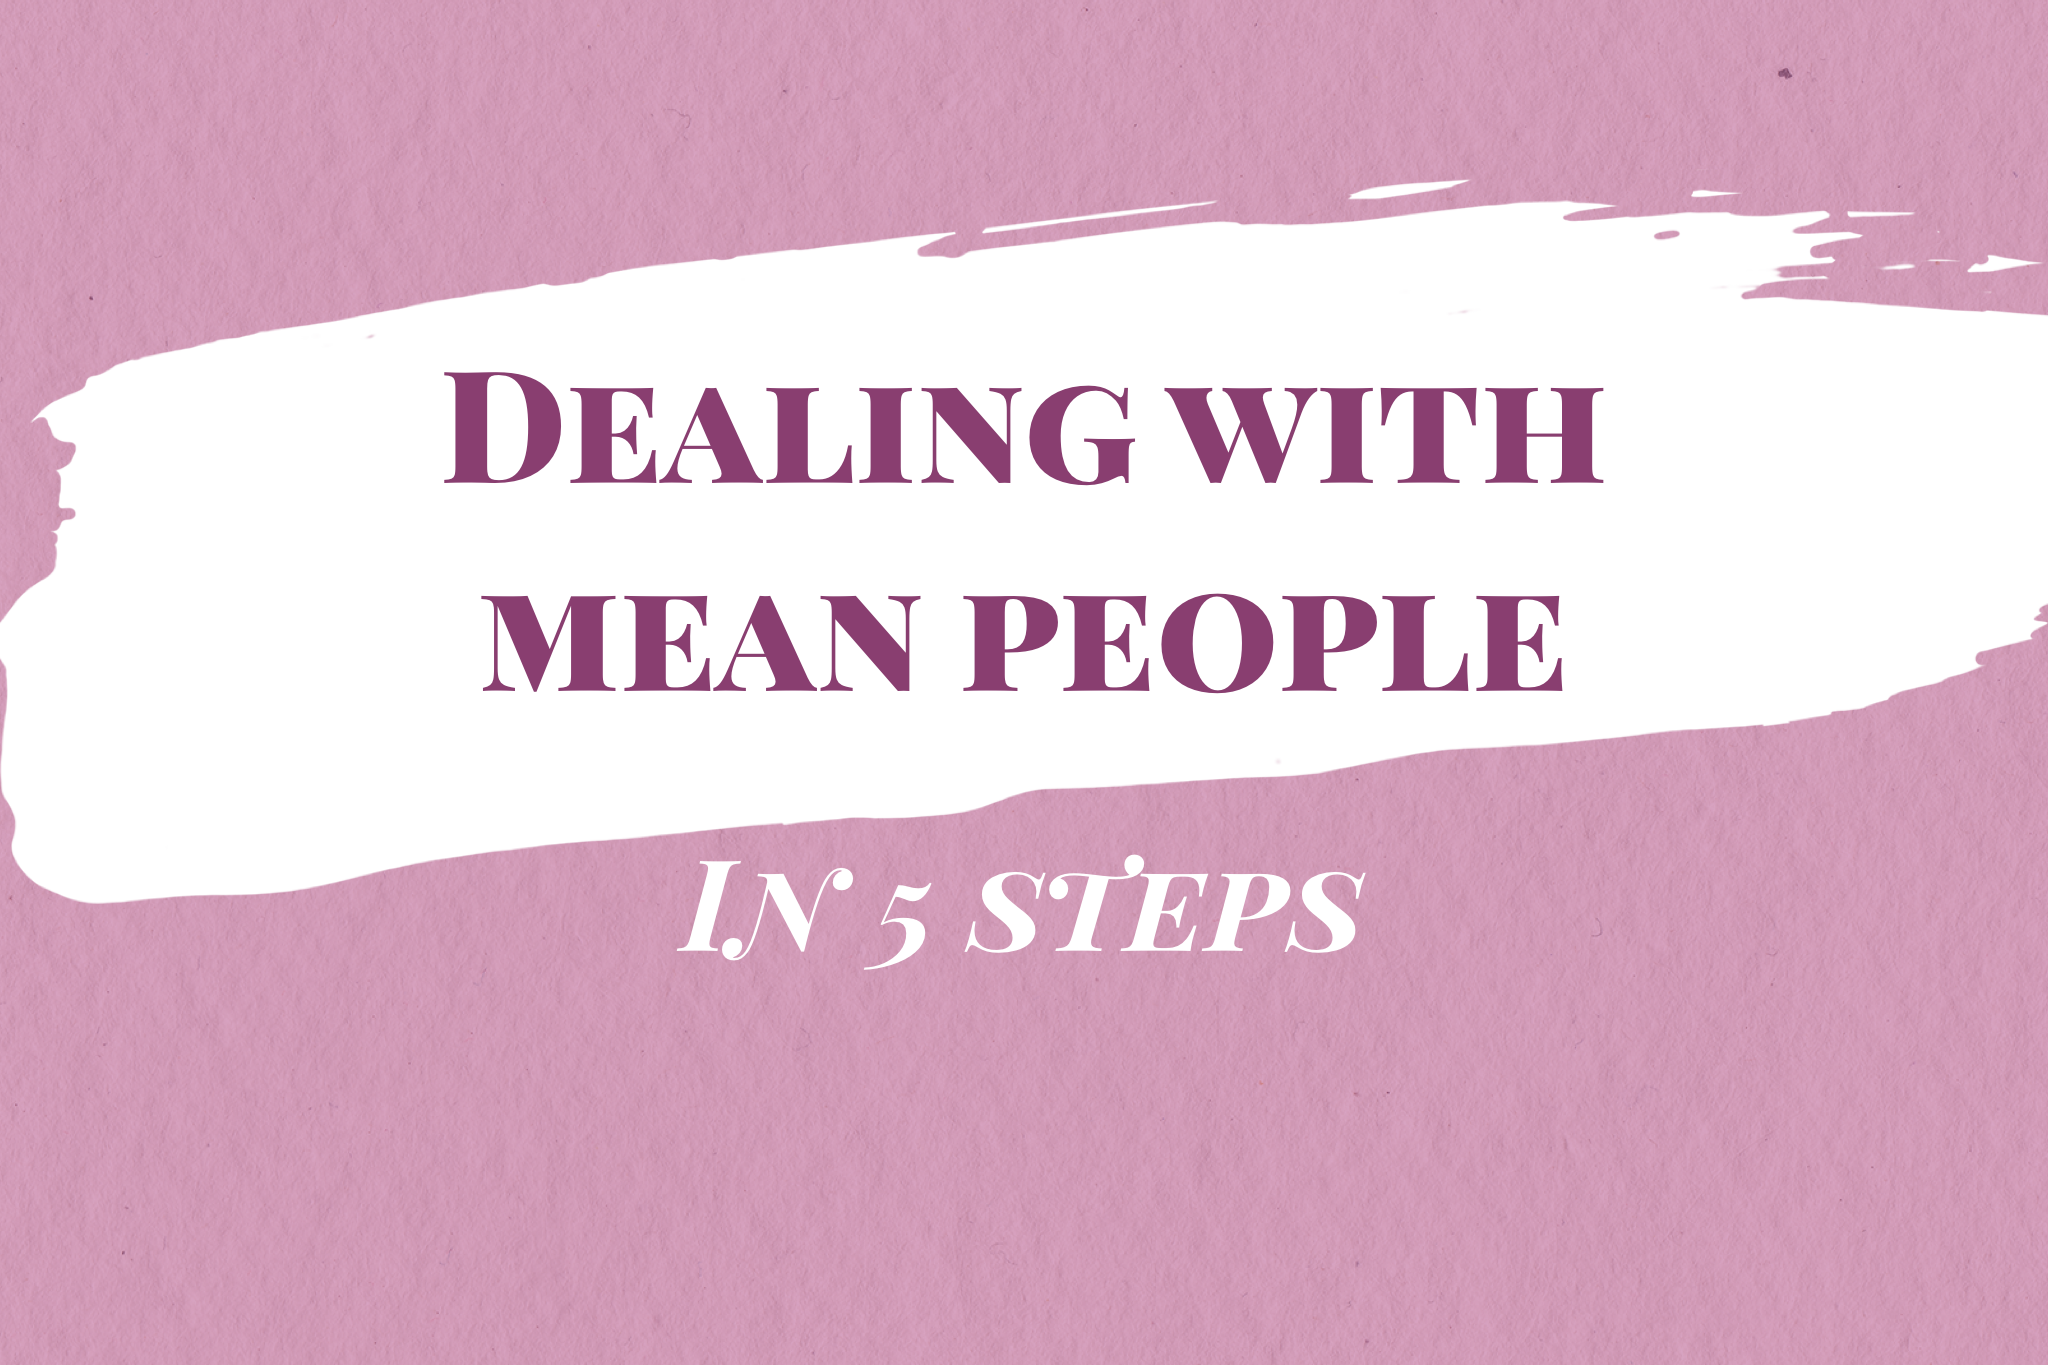 dealing with mean people in 5 steps list for how to deal with mean people